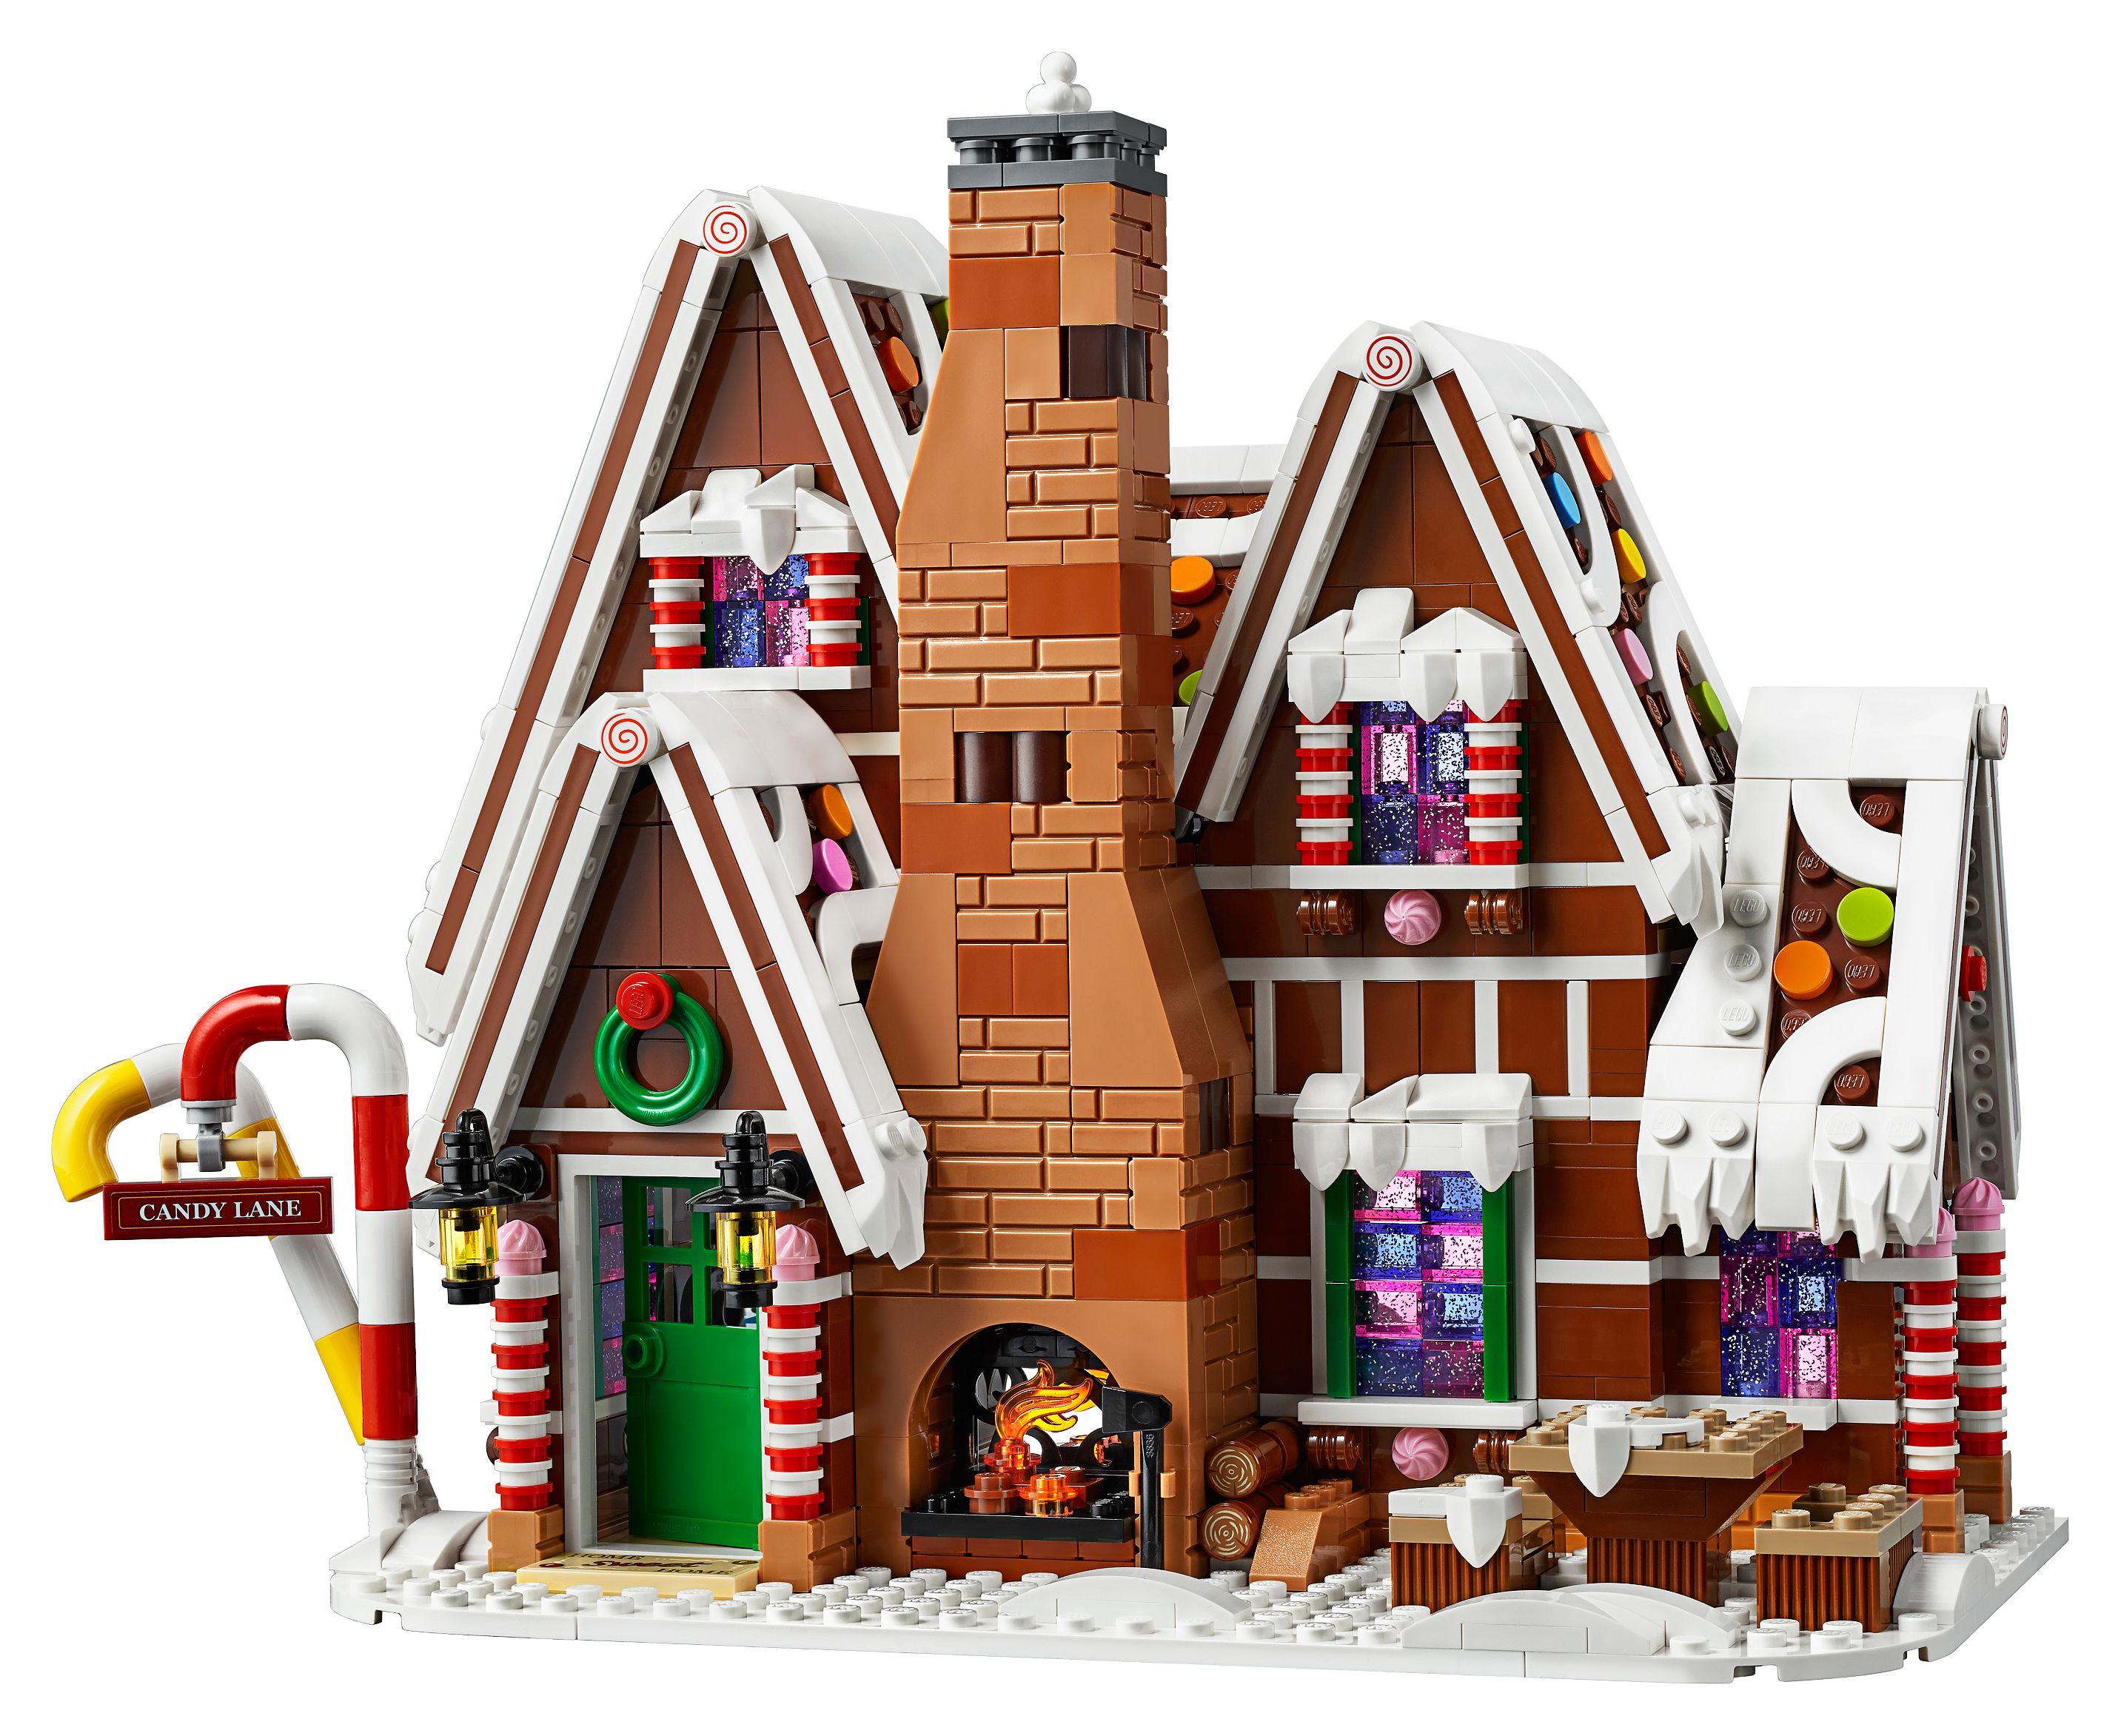 Christmas Houses.Gingerbread House 10267 Creator Expert Buy Online At The Official Lego Shop Us